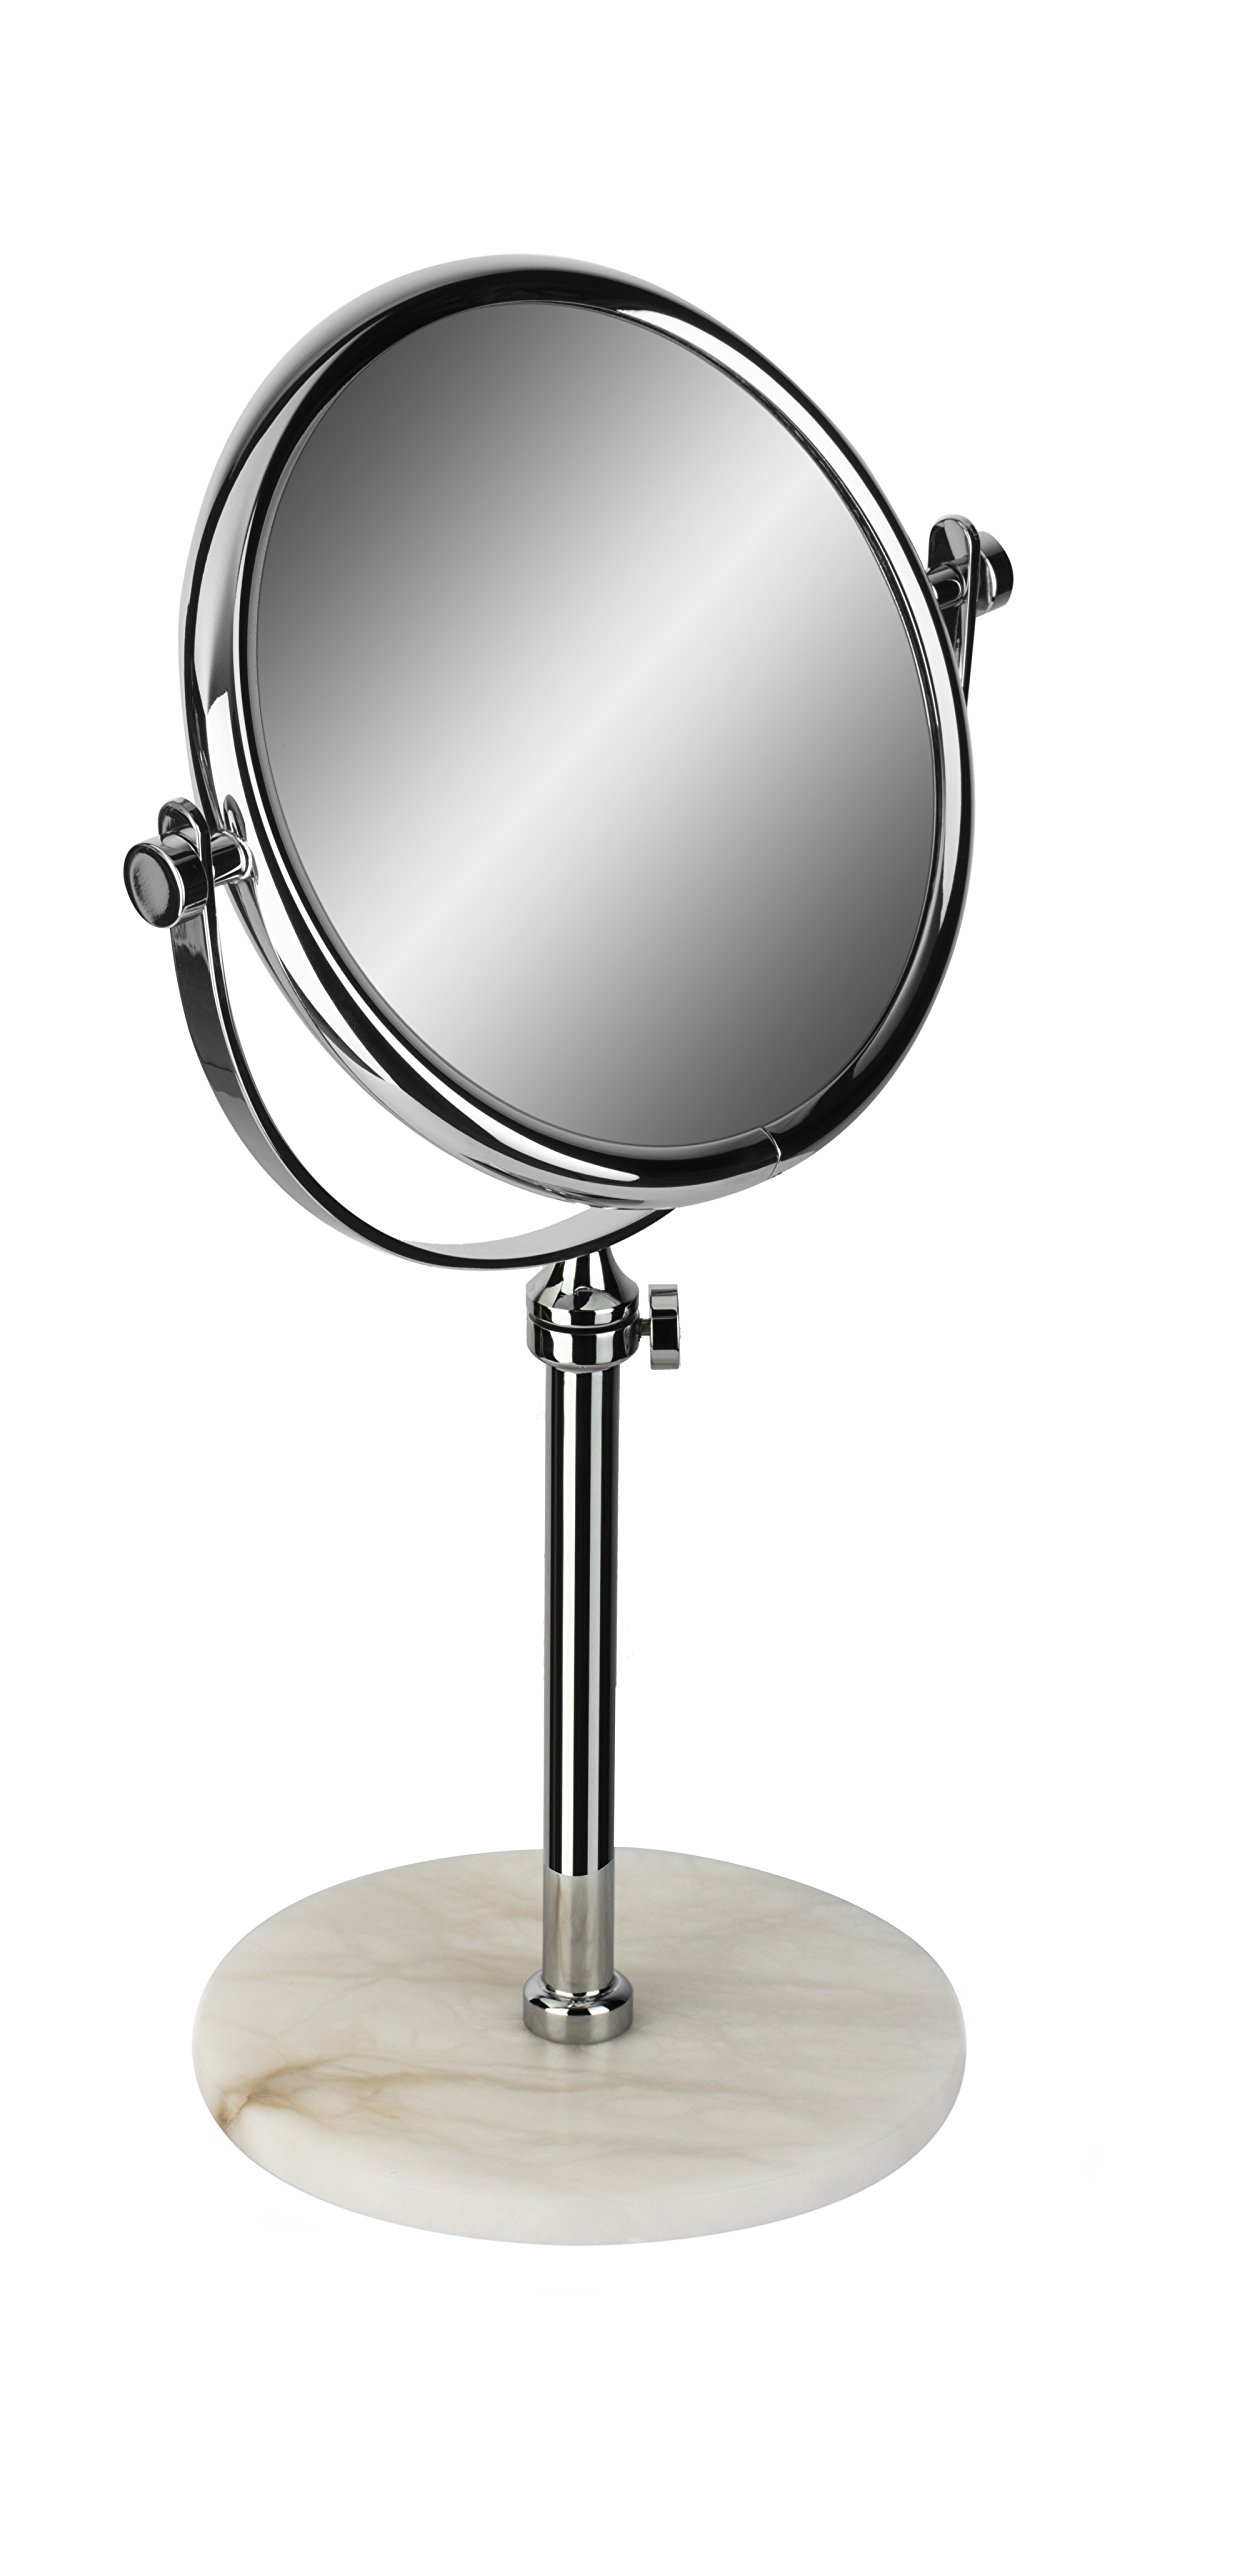 Alabaster Table Double Sided Extendable Cosmetic Makeup Magnifying Mirror (Polished Chrome, 3X Magnification)